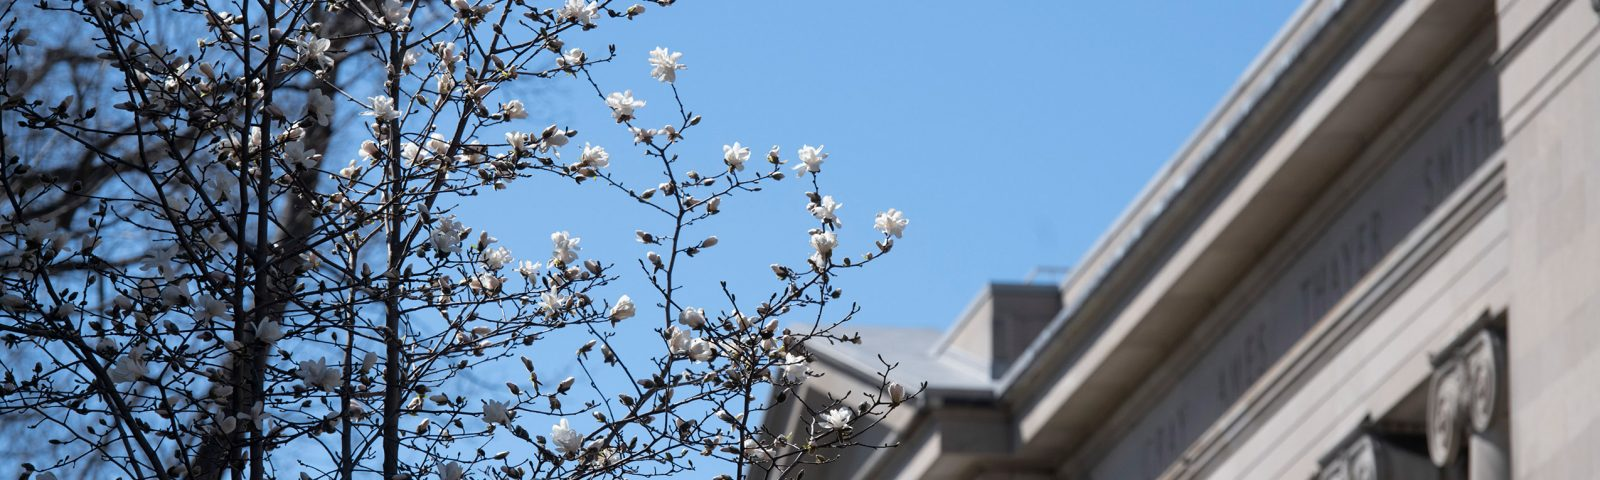 White flowers bloom in front of Langdell Hall